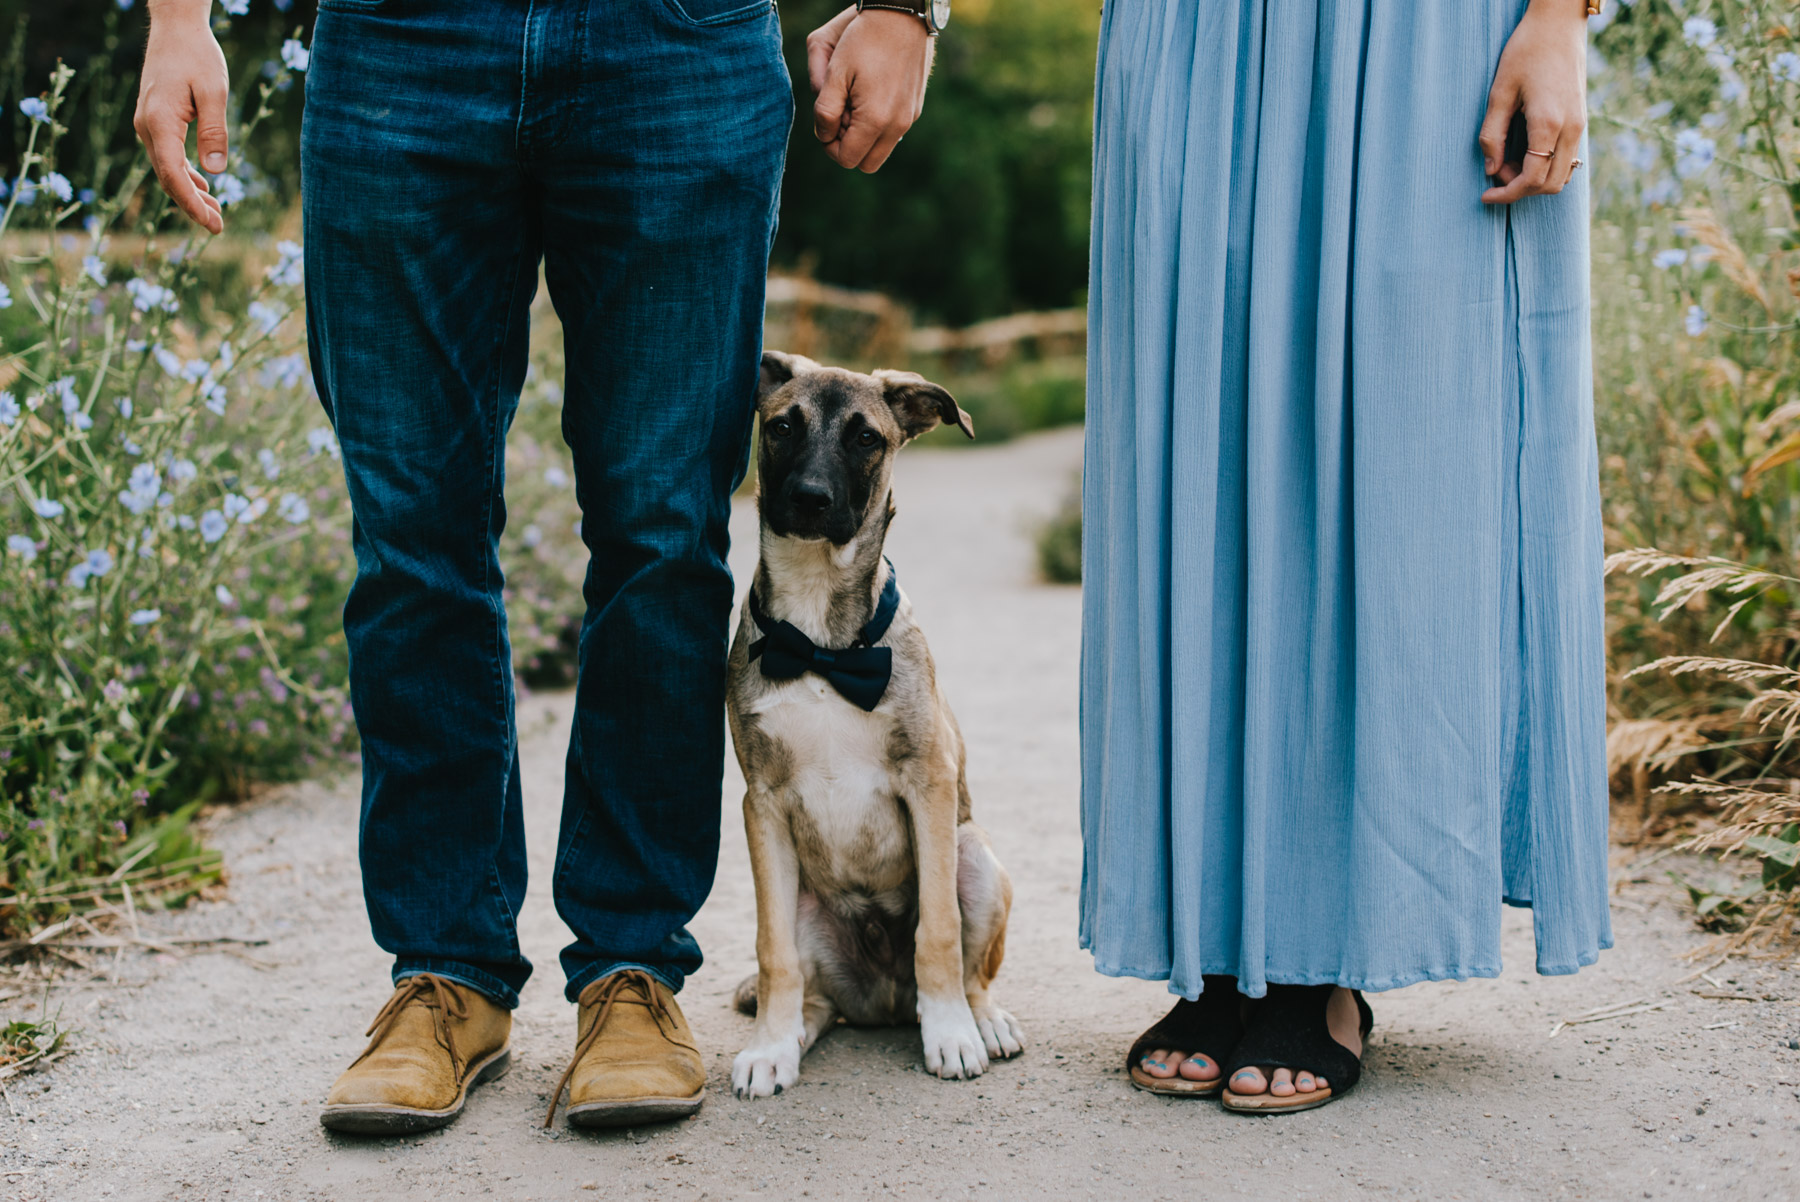 This engagement session was done at Mount Sanitas over the summer, and this adorable puppy stole the show! Betsy and Connor were up for a hiking engagement session, as long as their puppy Teddy could be involved, and I was all about it, cause like hello twist my arm, look at this cutie! And wearing a bowtie! I can't with the cuteness!